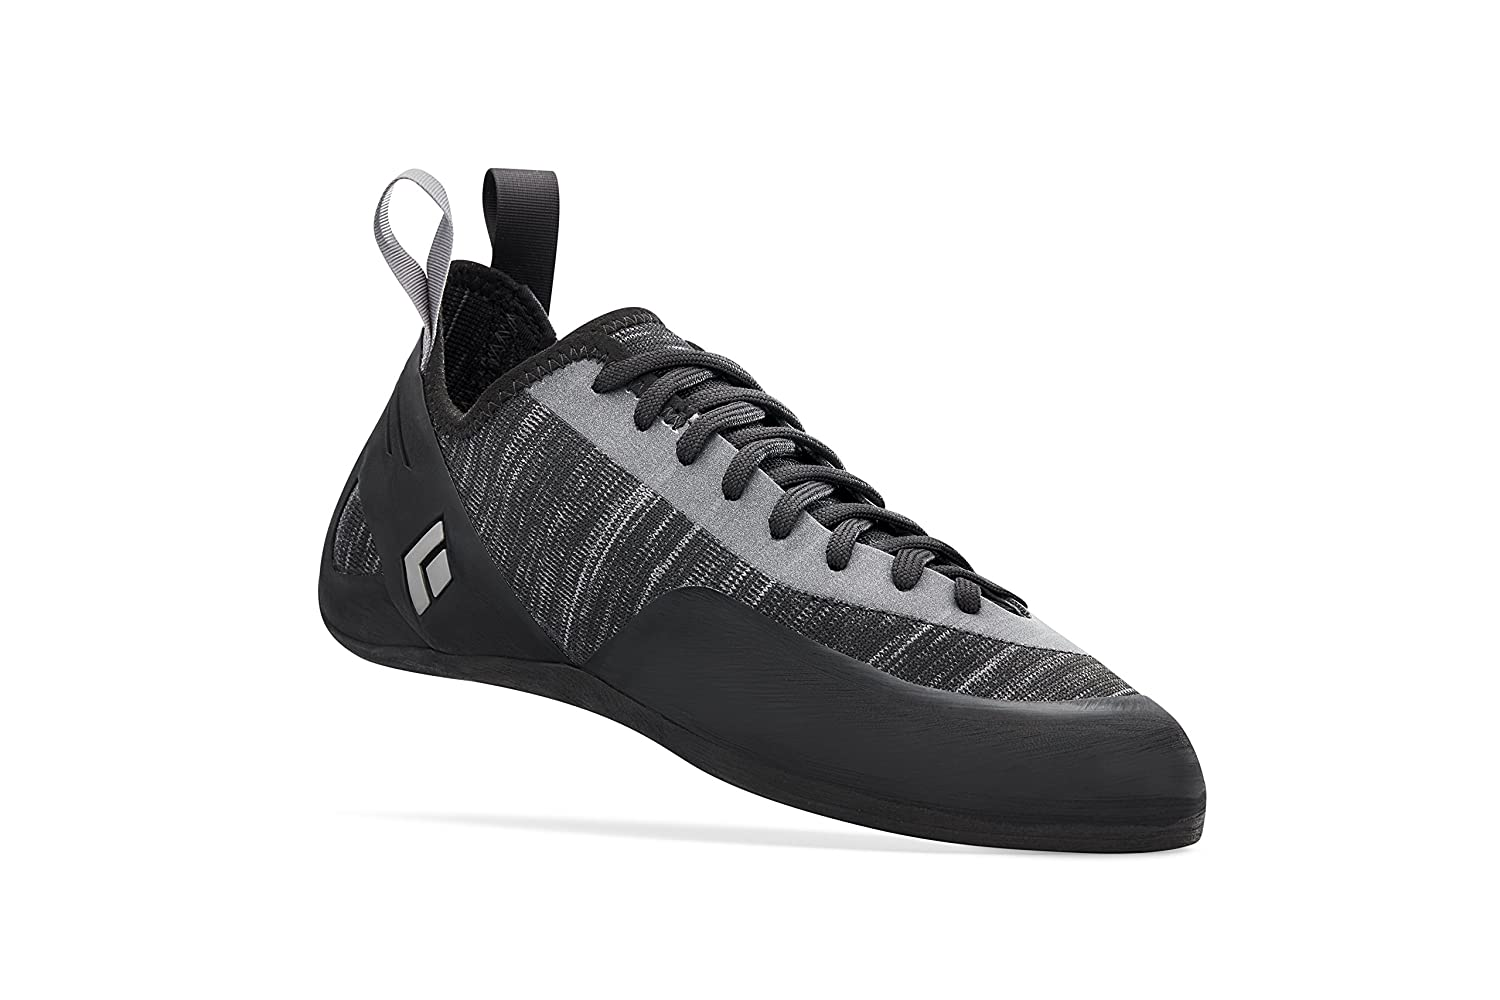 Black Diamond Mens Momentum Lace Climbing Shoes Best Rock Climbing Shoes